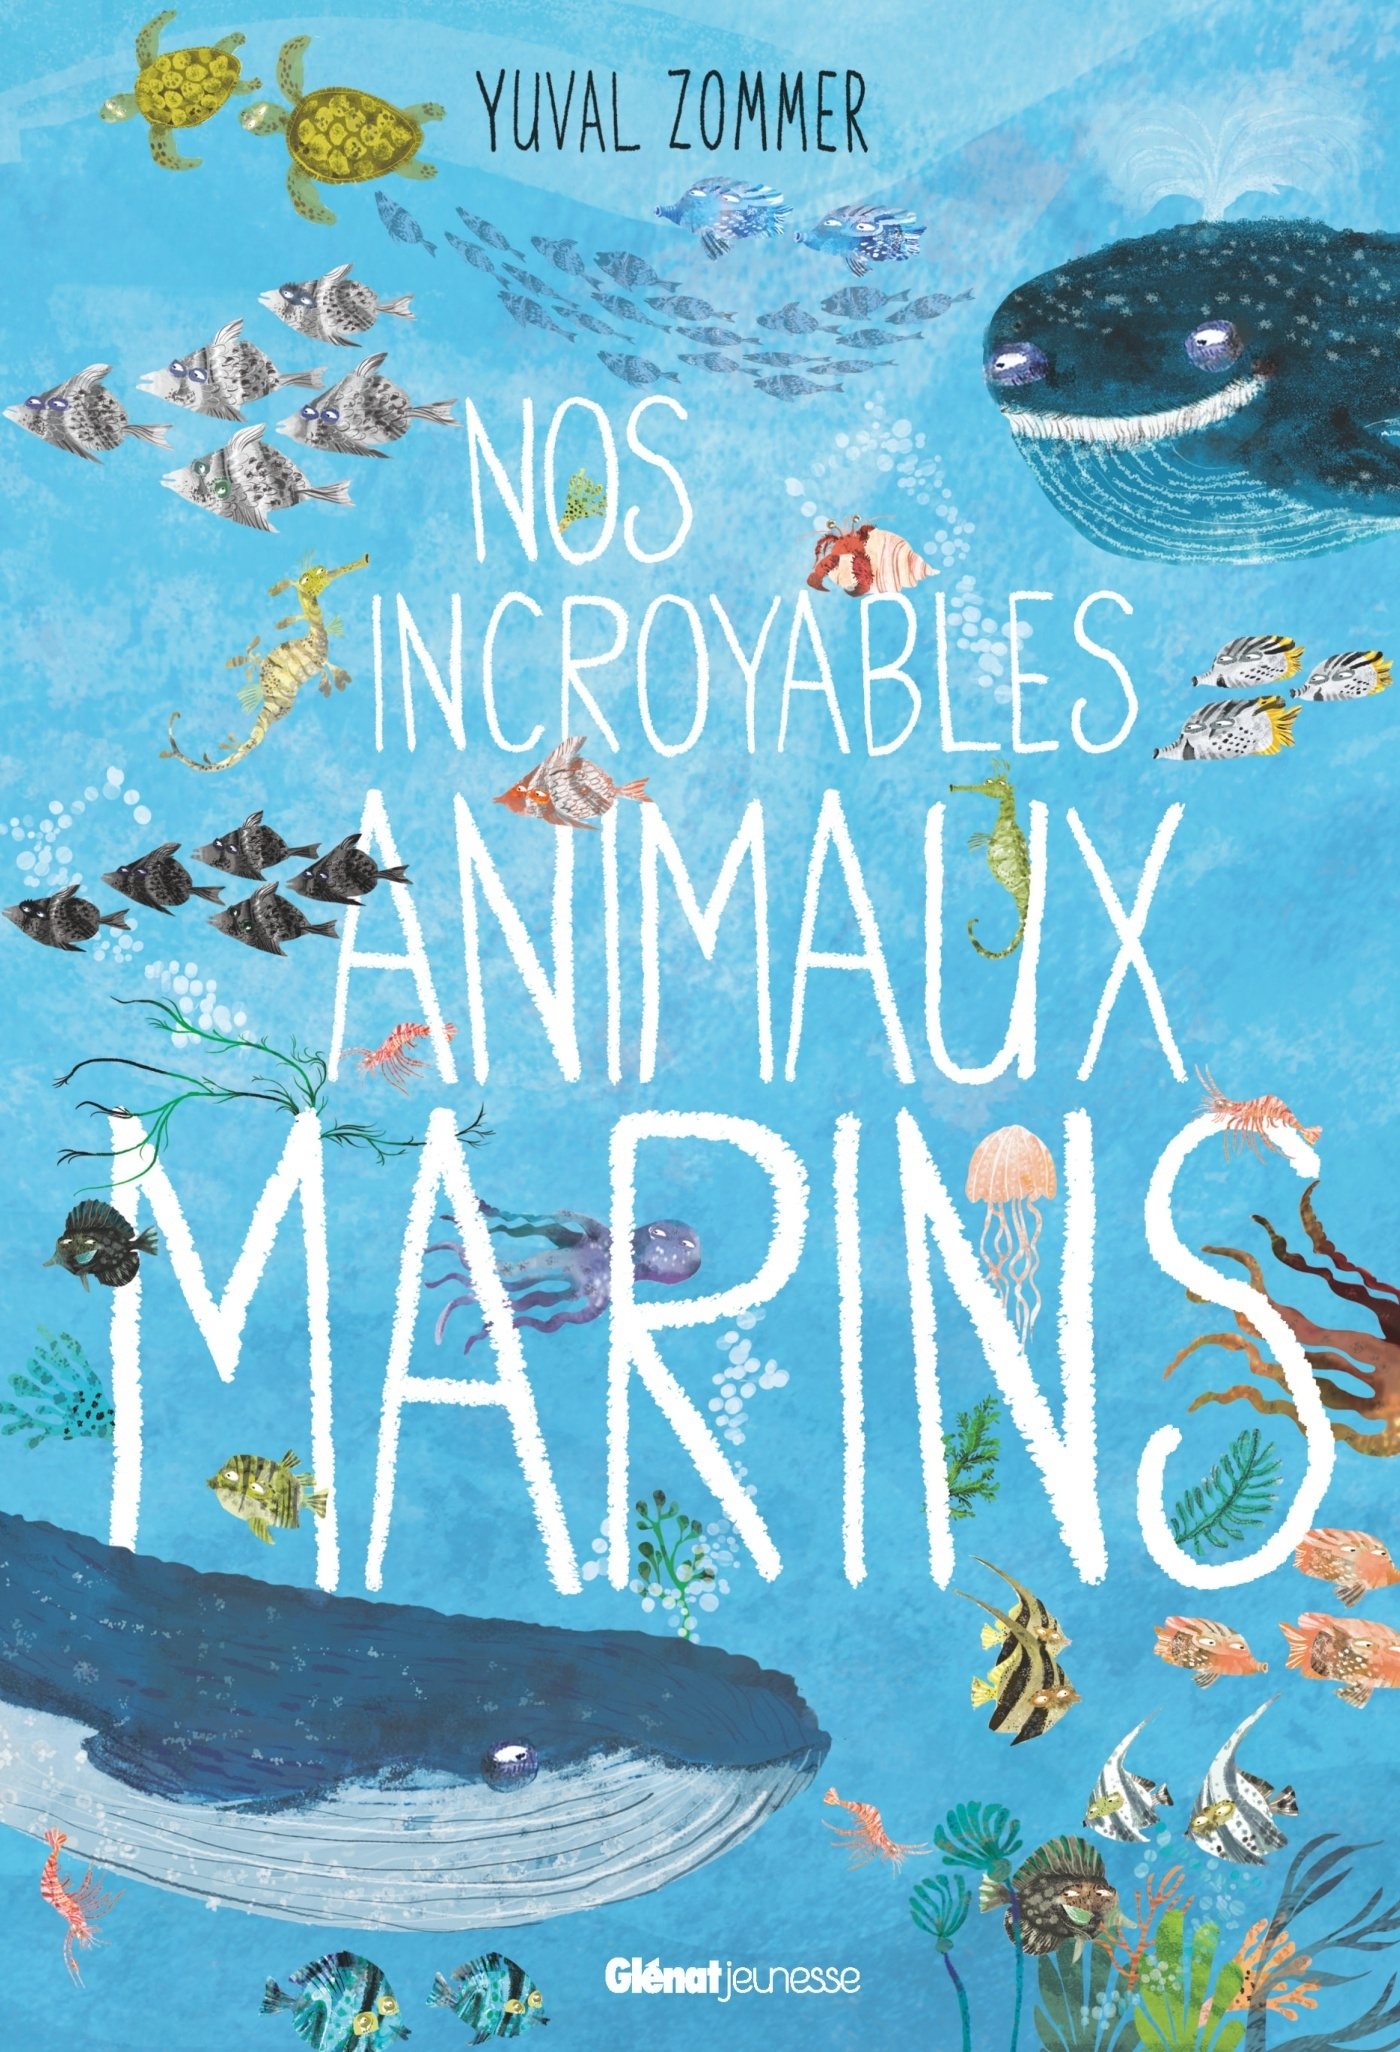 NOS INCROYABLES DOCUMENTAIRES - NOS INCROYABLES ANIMAUX MARINS